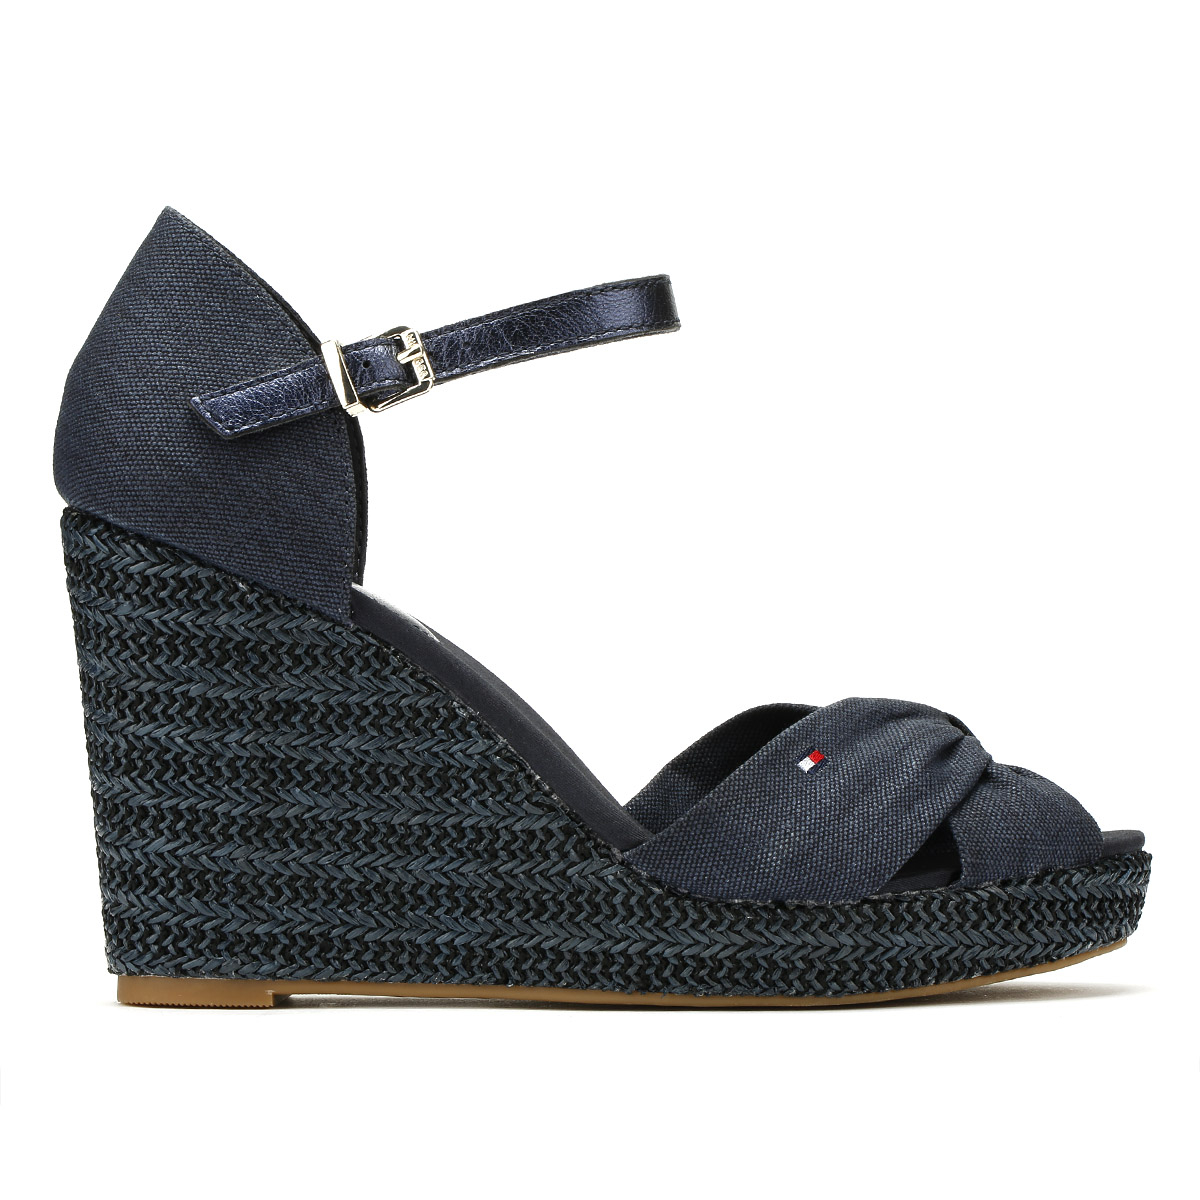 Tommy Metallic Hilfiger Damenschuhe Sandales Midnight Navy Metallic Tommy Elena Summer Wedge Schuhes 9d2914